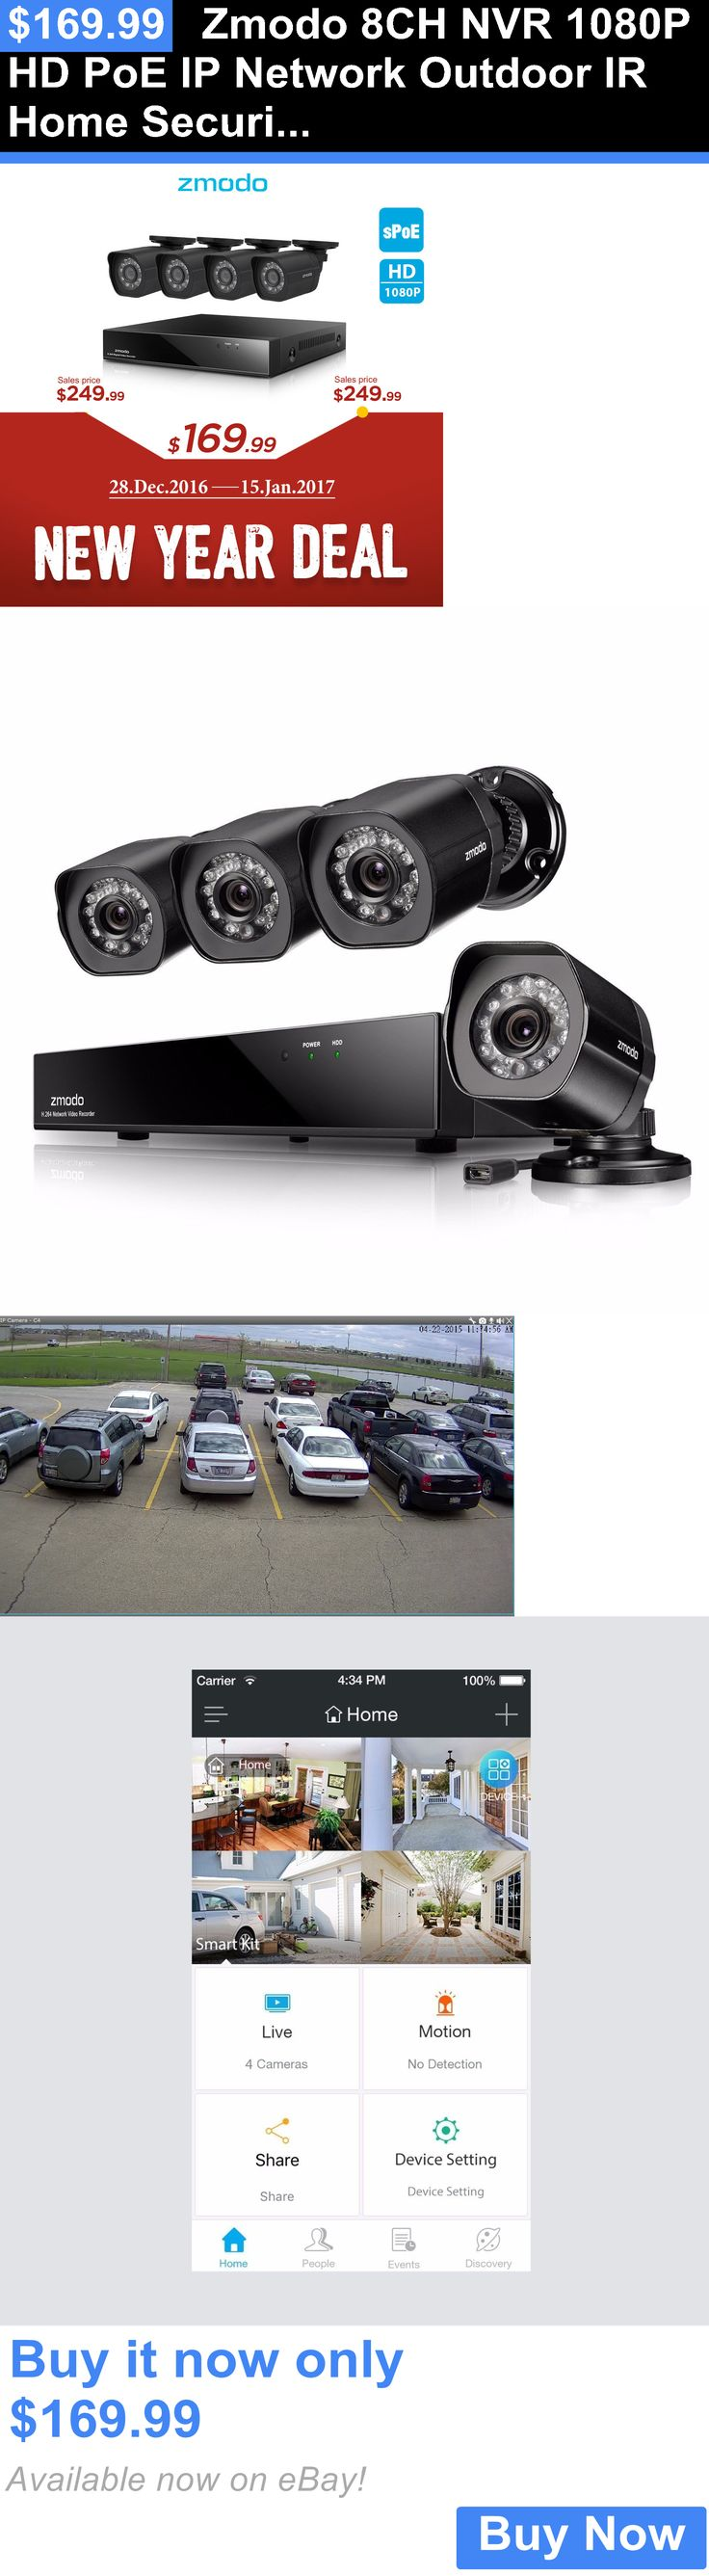 Digital Video Recorders Cards: Zmodo 8Ch Nvr 1080P Hd Poe Ip Network Outdoor Ir Home Security Camera System BUY IT NOW ONLY: $169.99